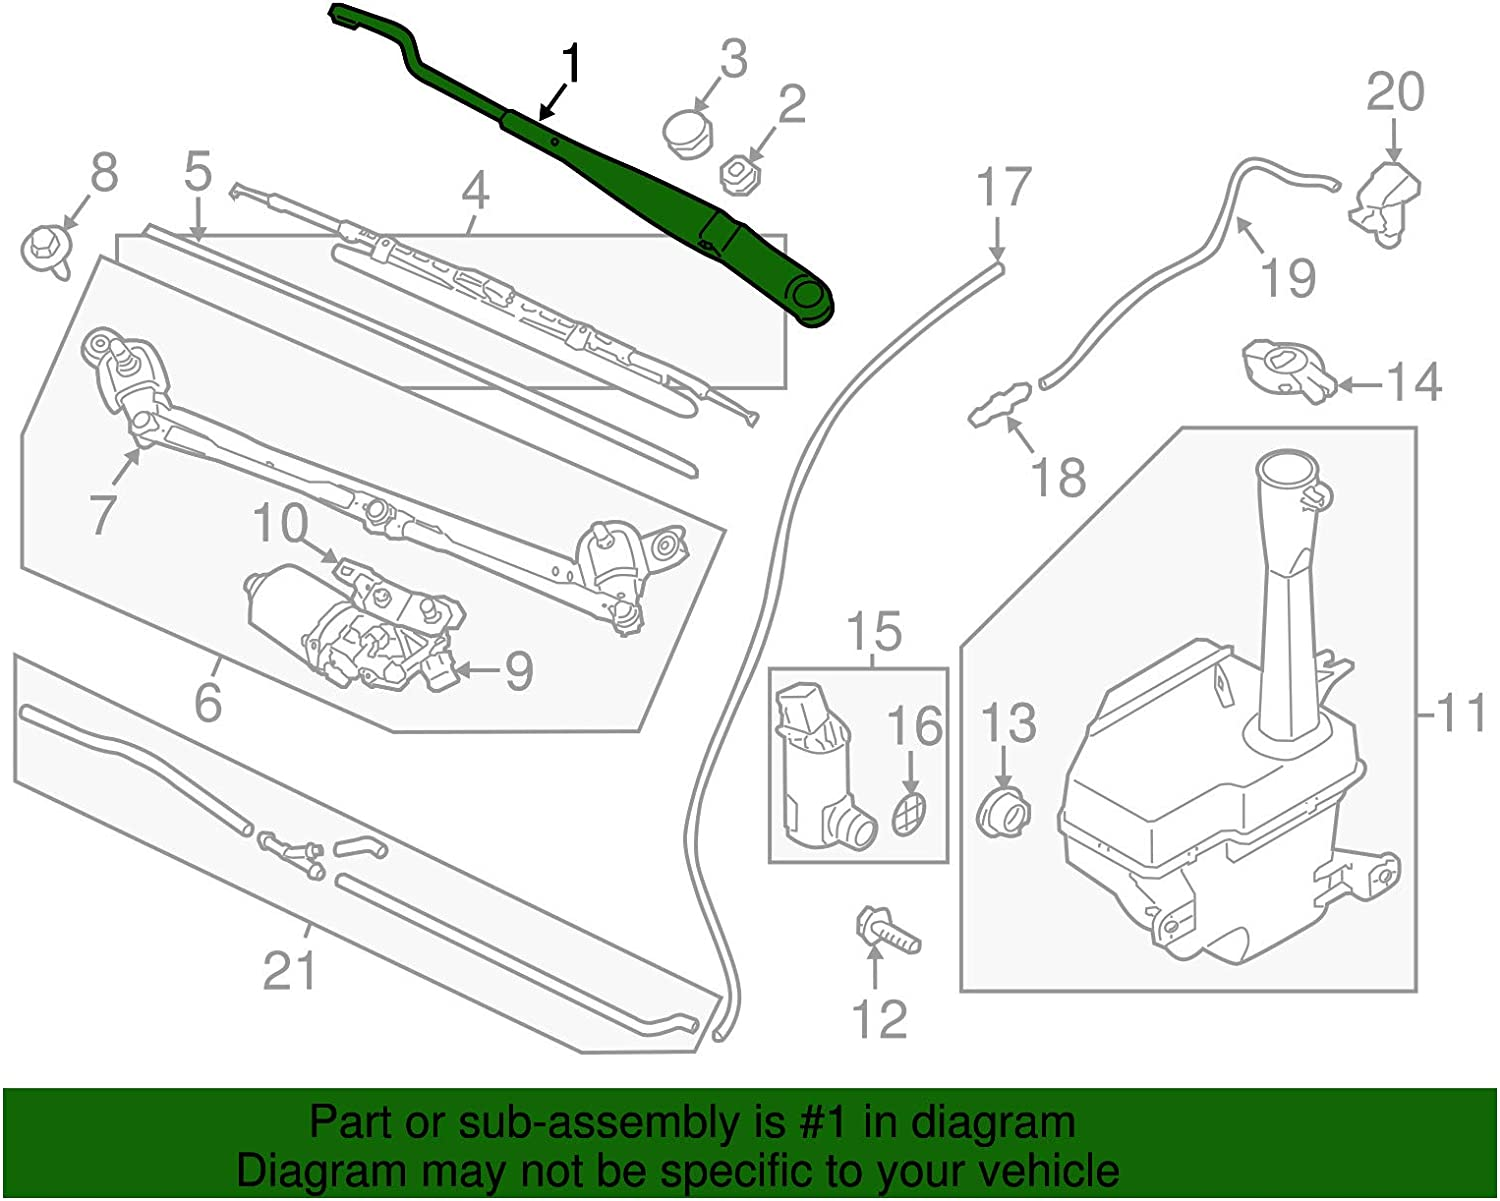 Replacement Parts Kia 98320-1F000 Windshield Wiper Arm Wipers